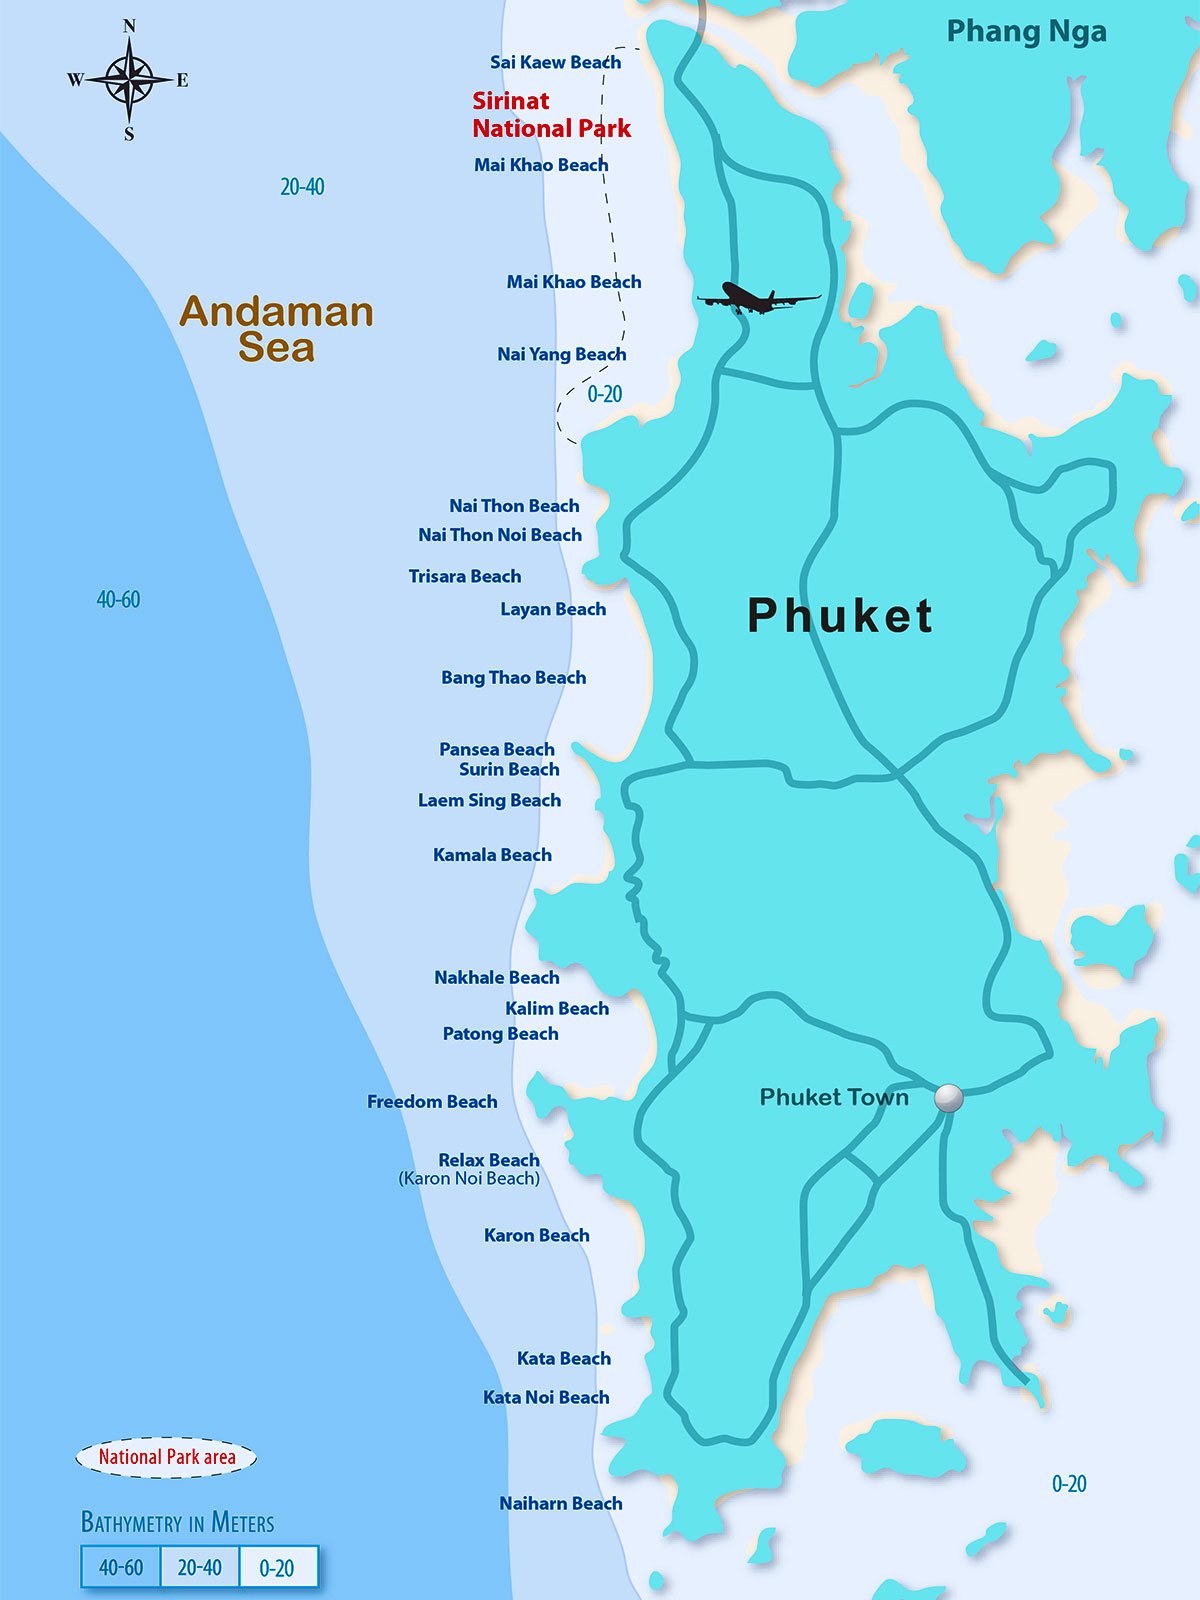 Bathymetry | Surf Map Phuket | Surf Resource Sustainability Index | Dr Steven Andrew Martin | Surf Thailand | Tourism Research